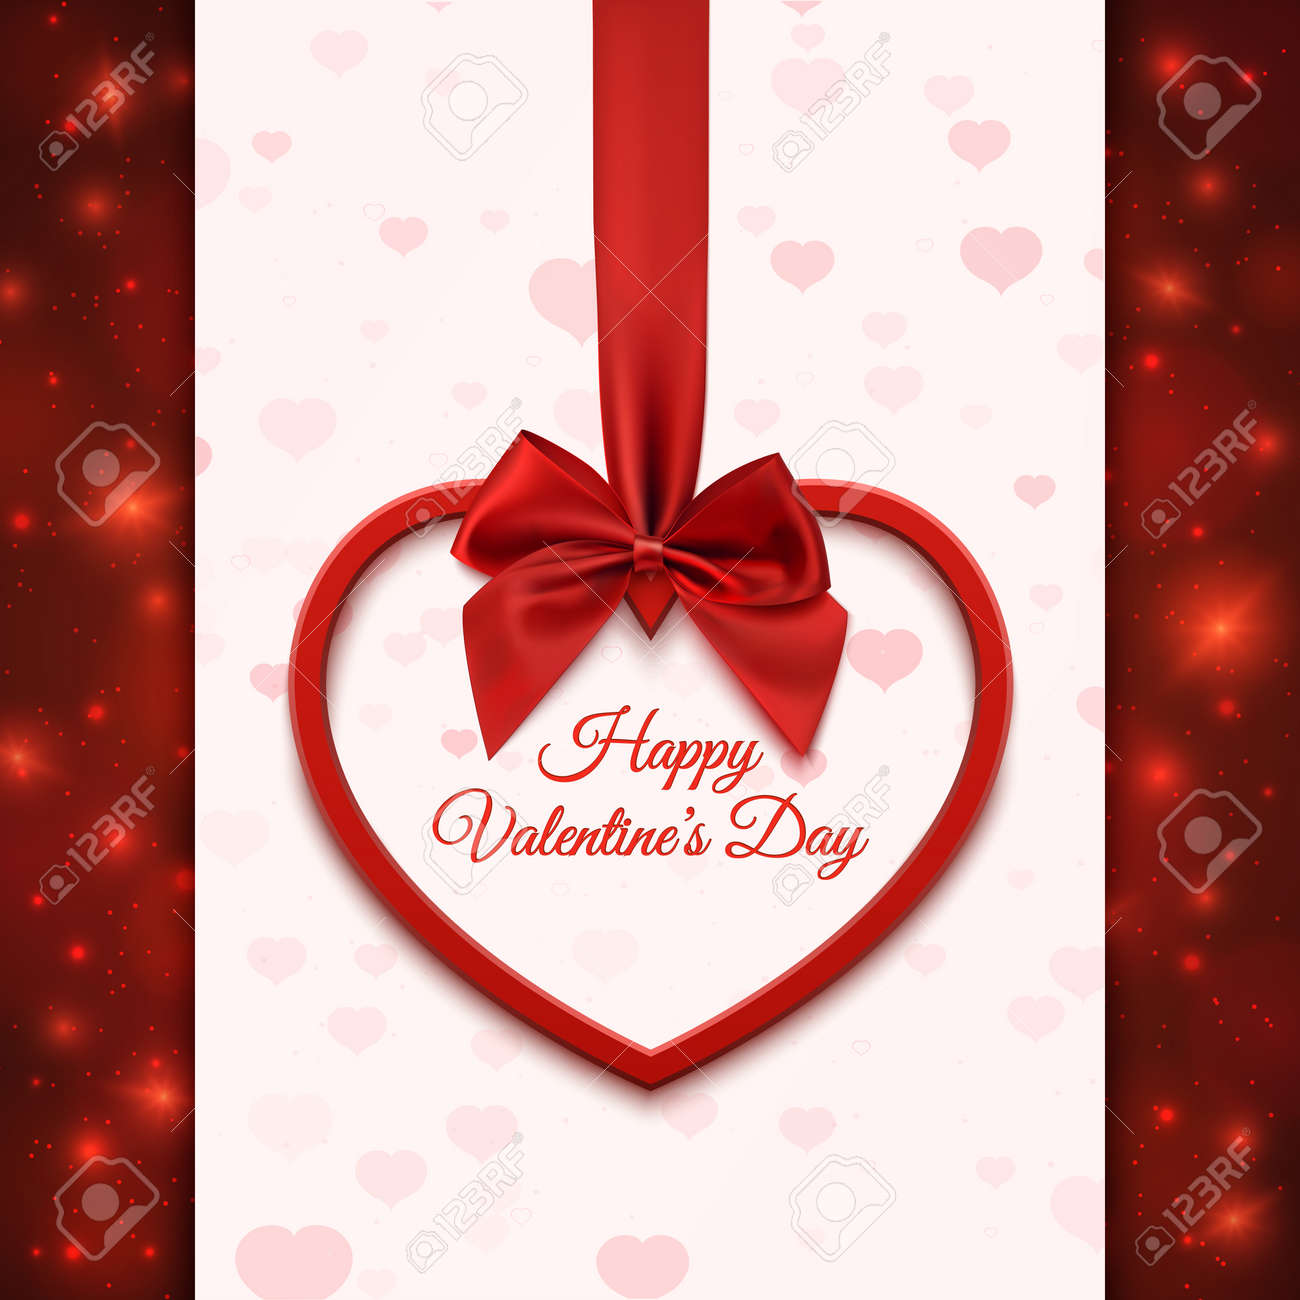 Happy Valentines Day Greeting Card Template Red Heart With Red – Valentine Day Greeting Card